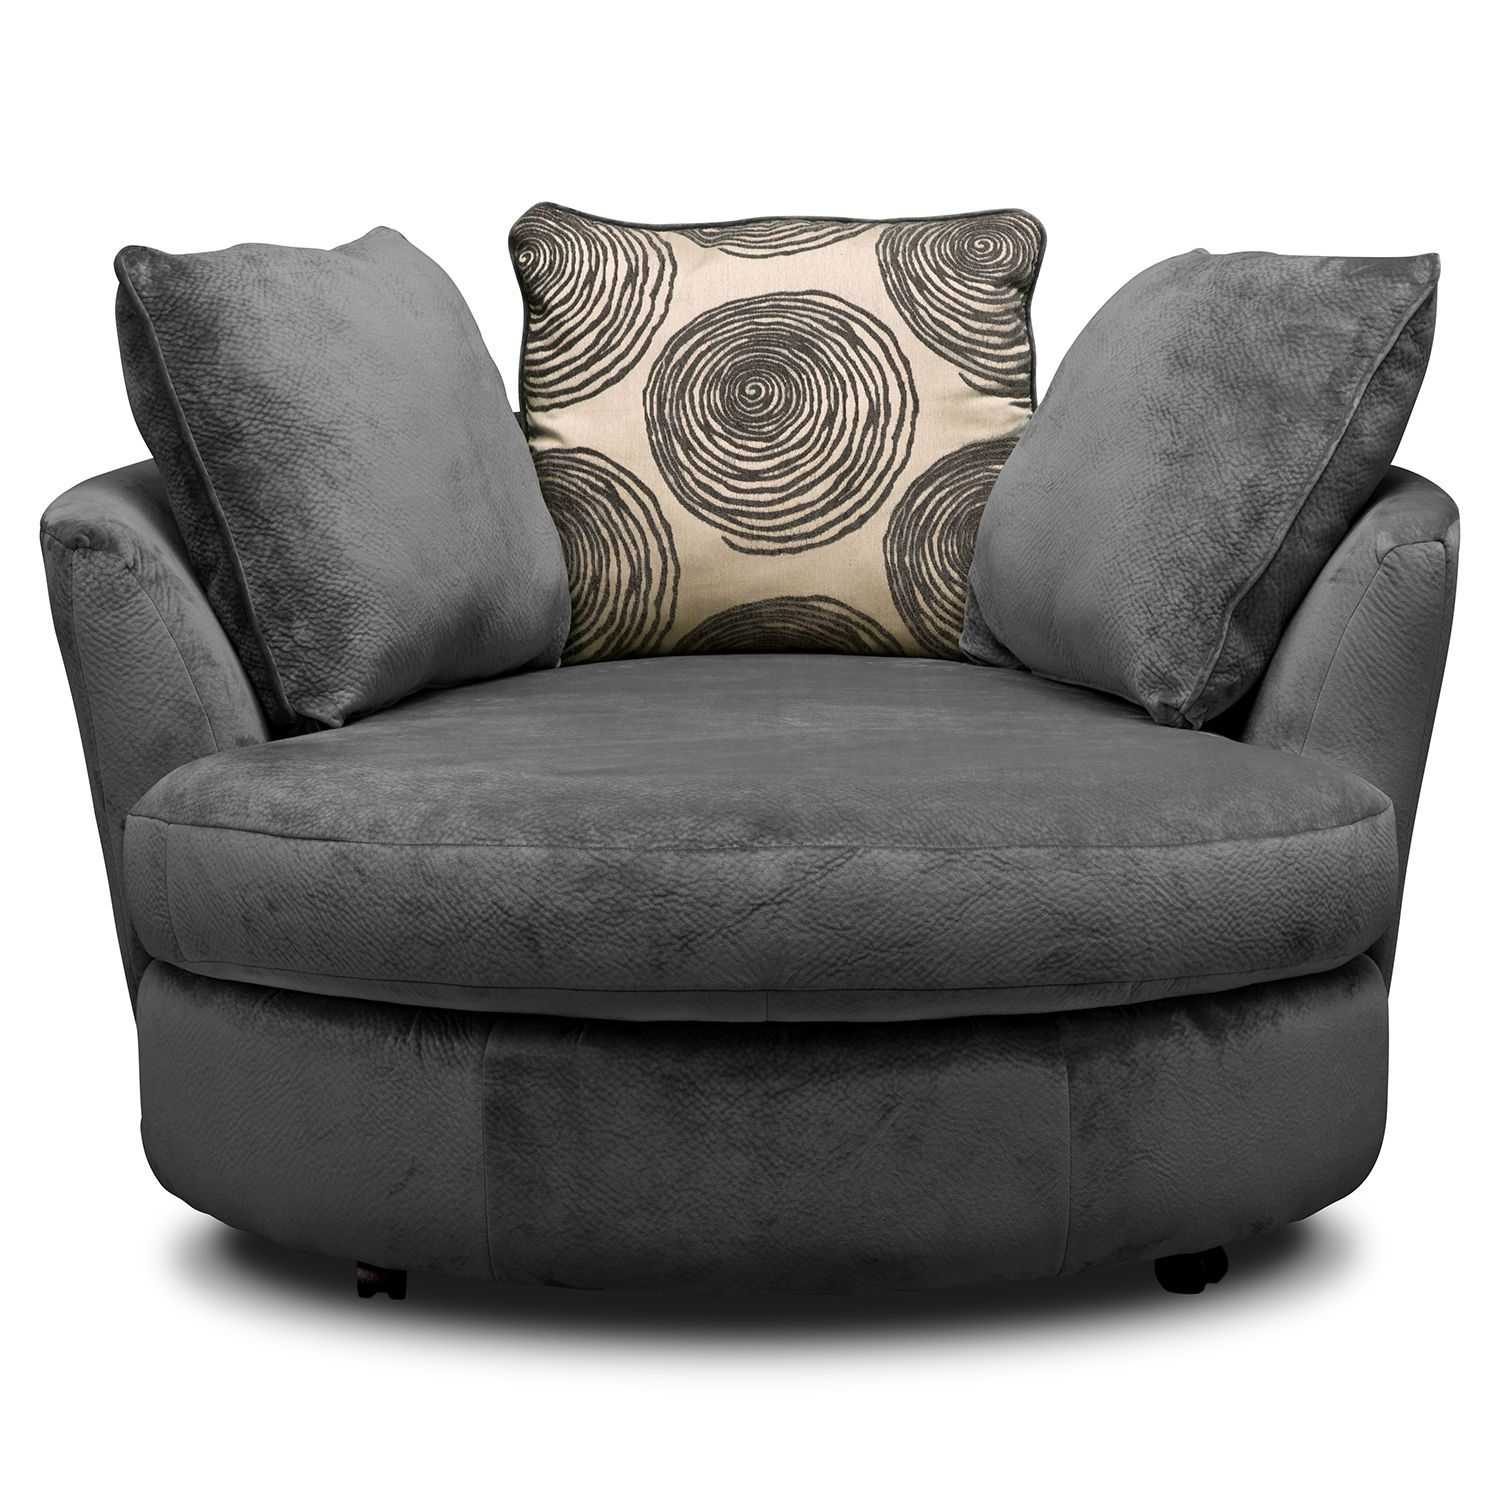 Sofas Center Round Sofa Chair For Saleshley Furniture Big Large Pertaining To Big Round Sofa Chairs (View 3 of 15)